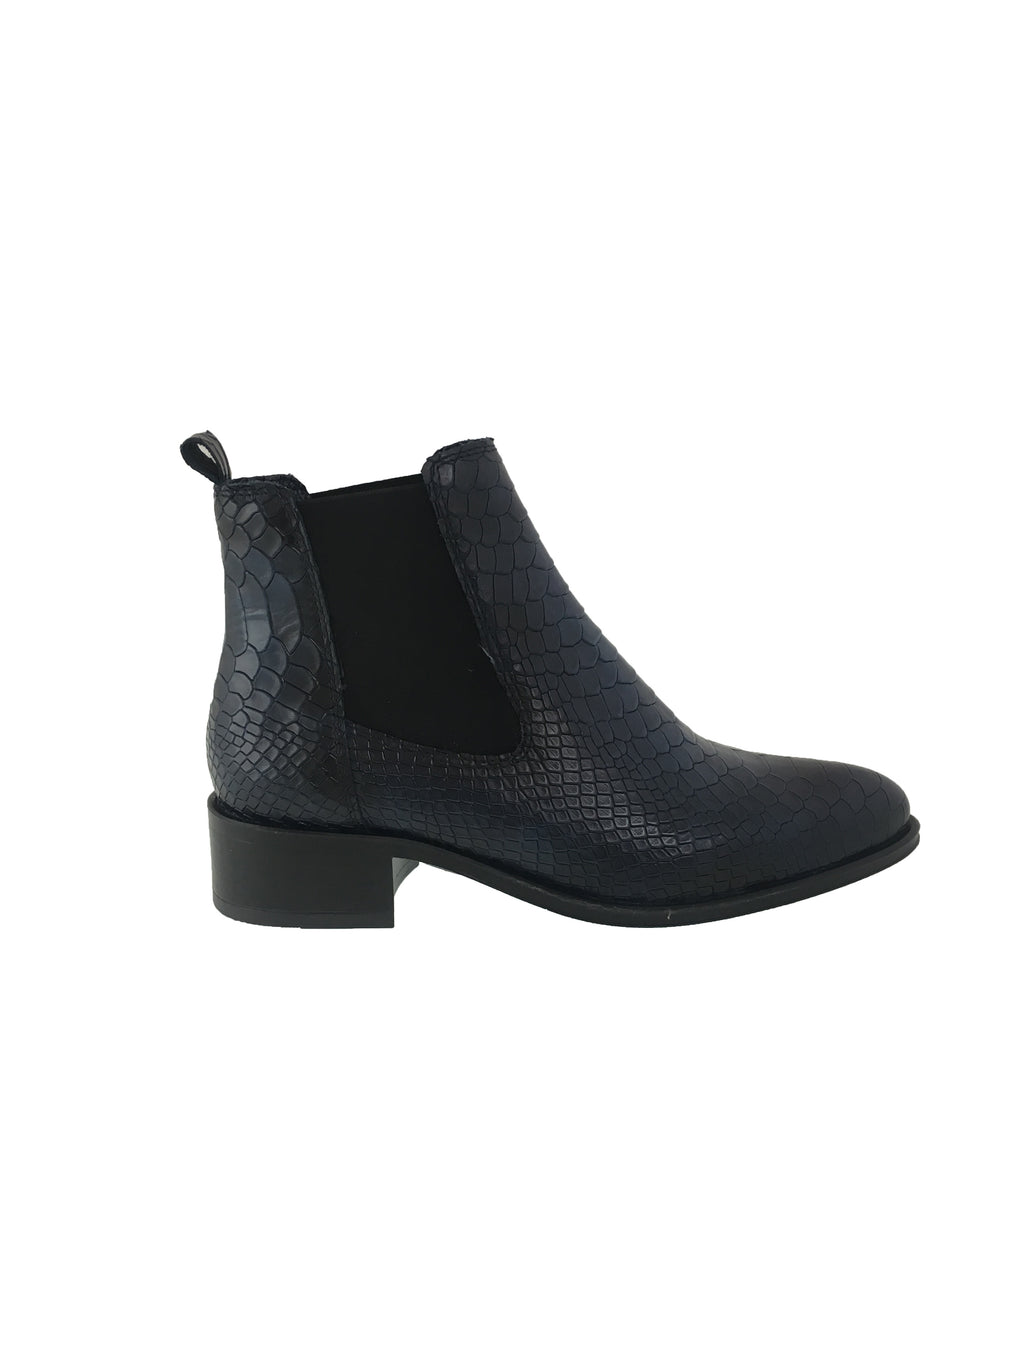 Ateliers Bobby Boot-Snake leather Chelsea boot on a stacked heel